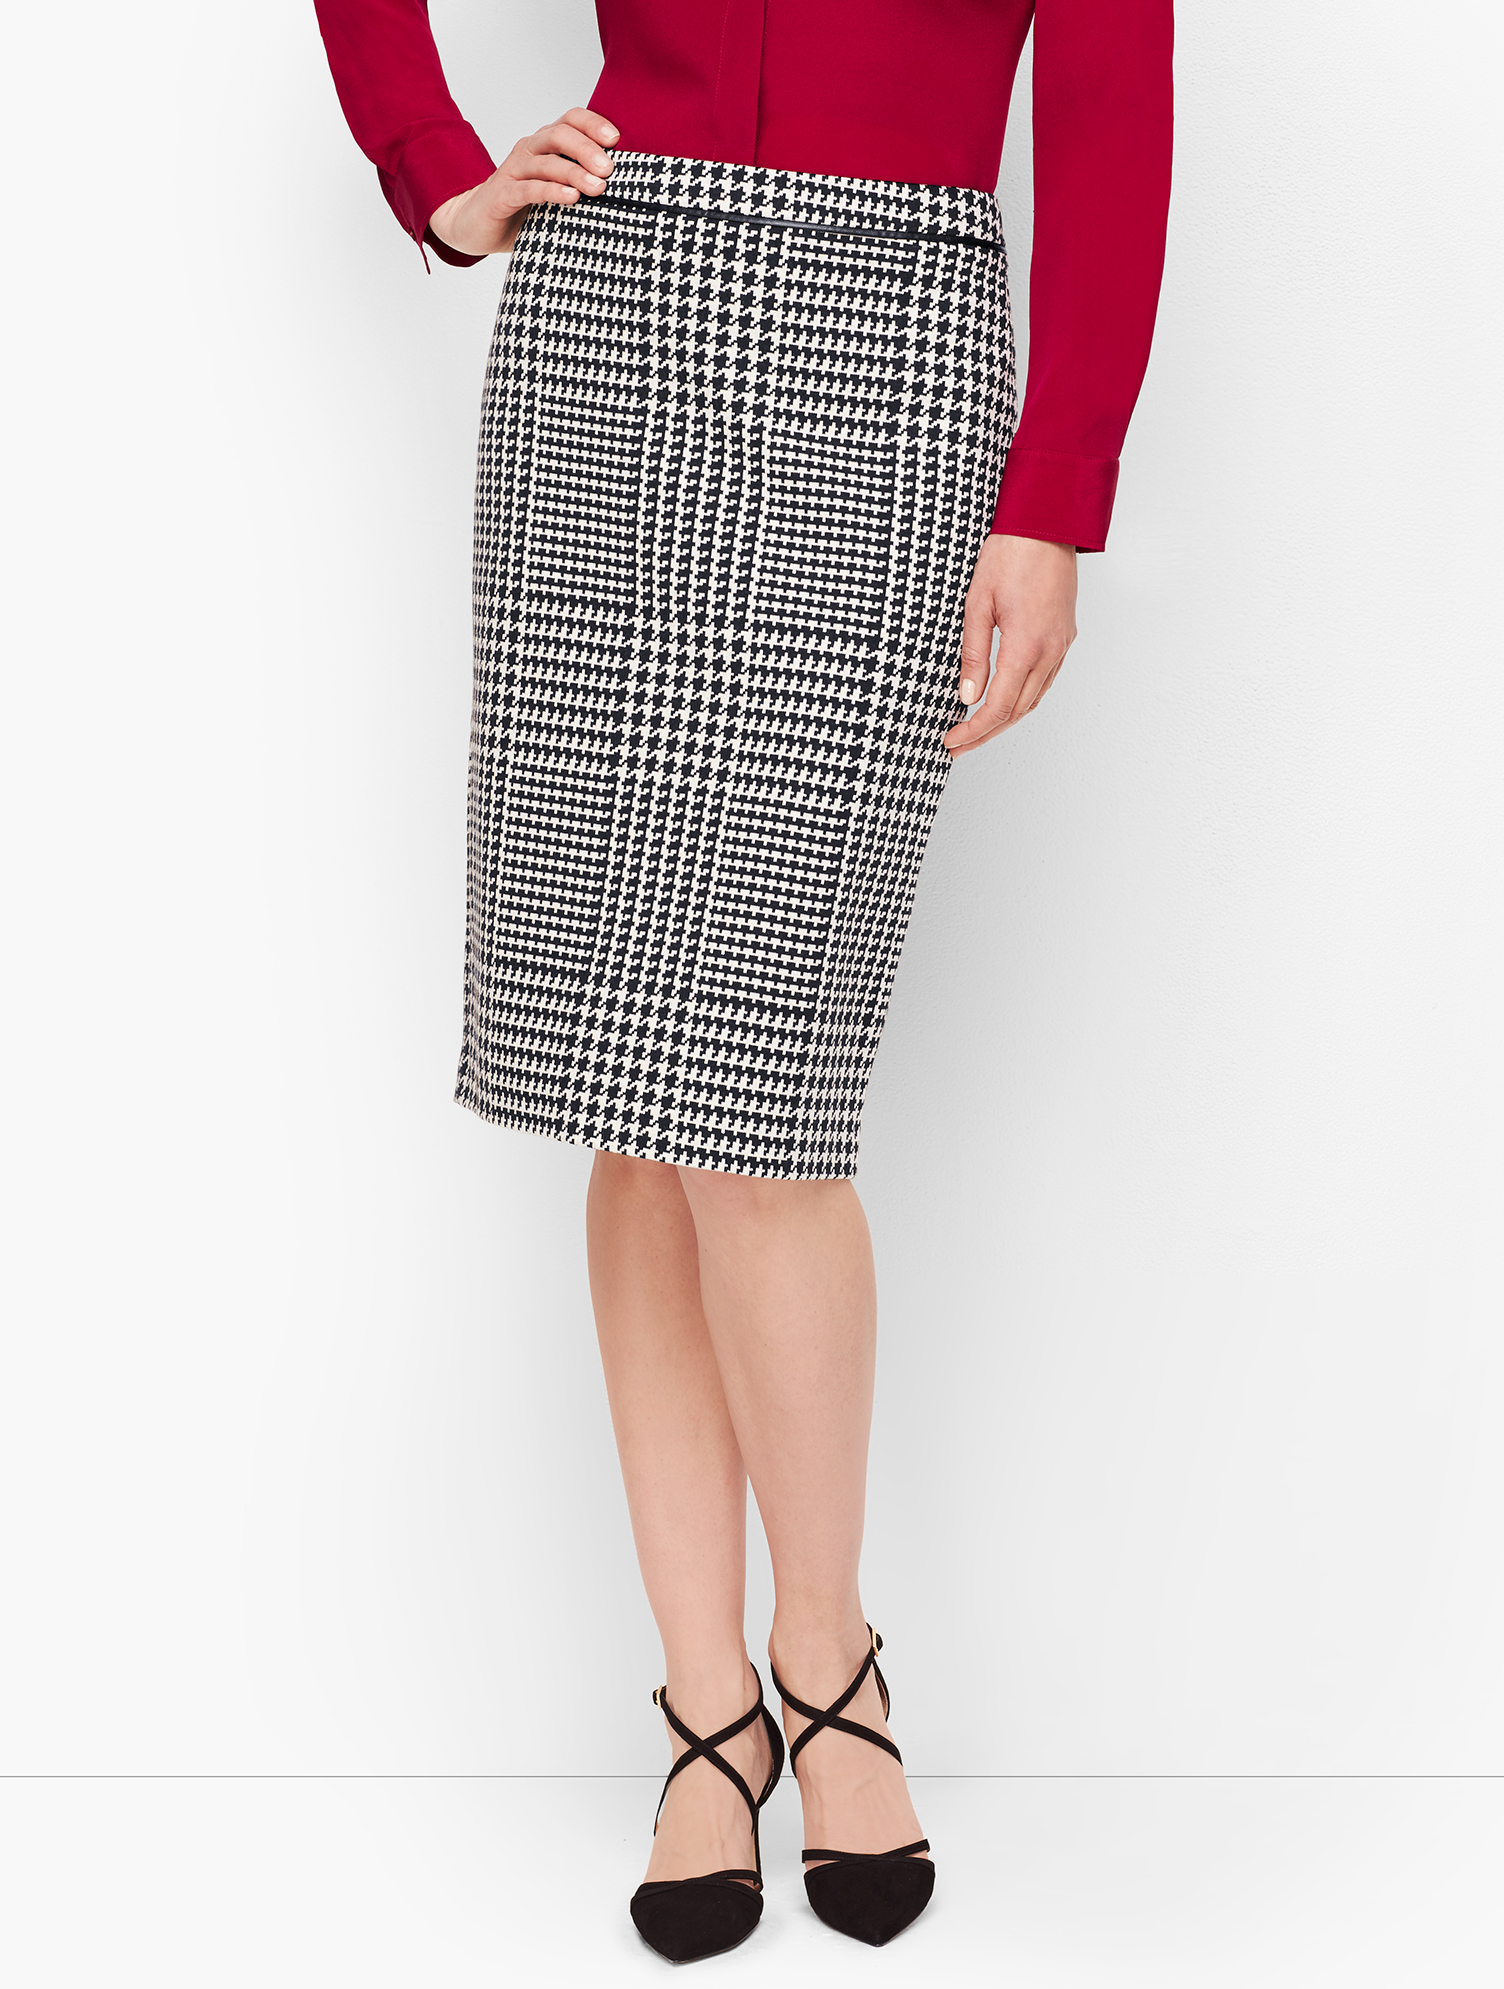 Retro Skirts: Vintage, Pencil, Circle, & Plus Sizes Jacquard Pencil Skirt - BLACKWHITE - 16 - Talbots $69.99 AT vintagedancer.com